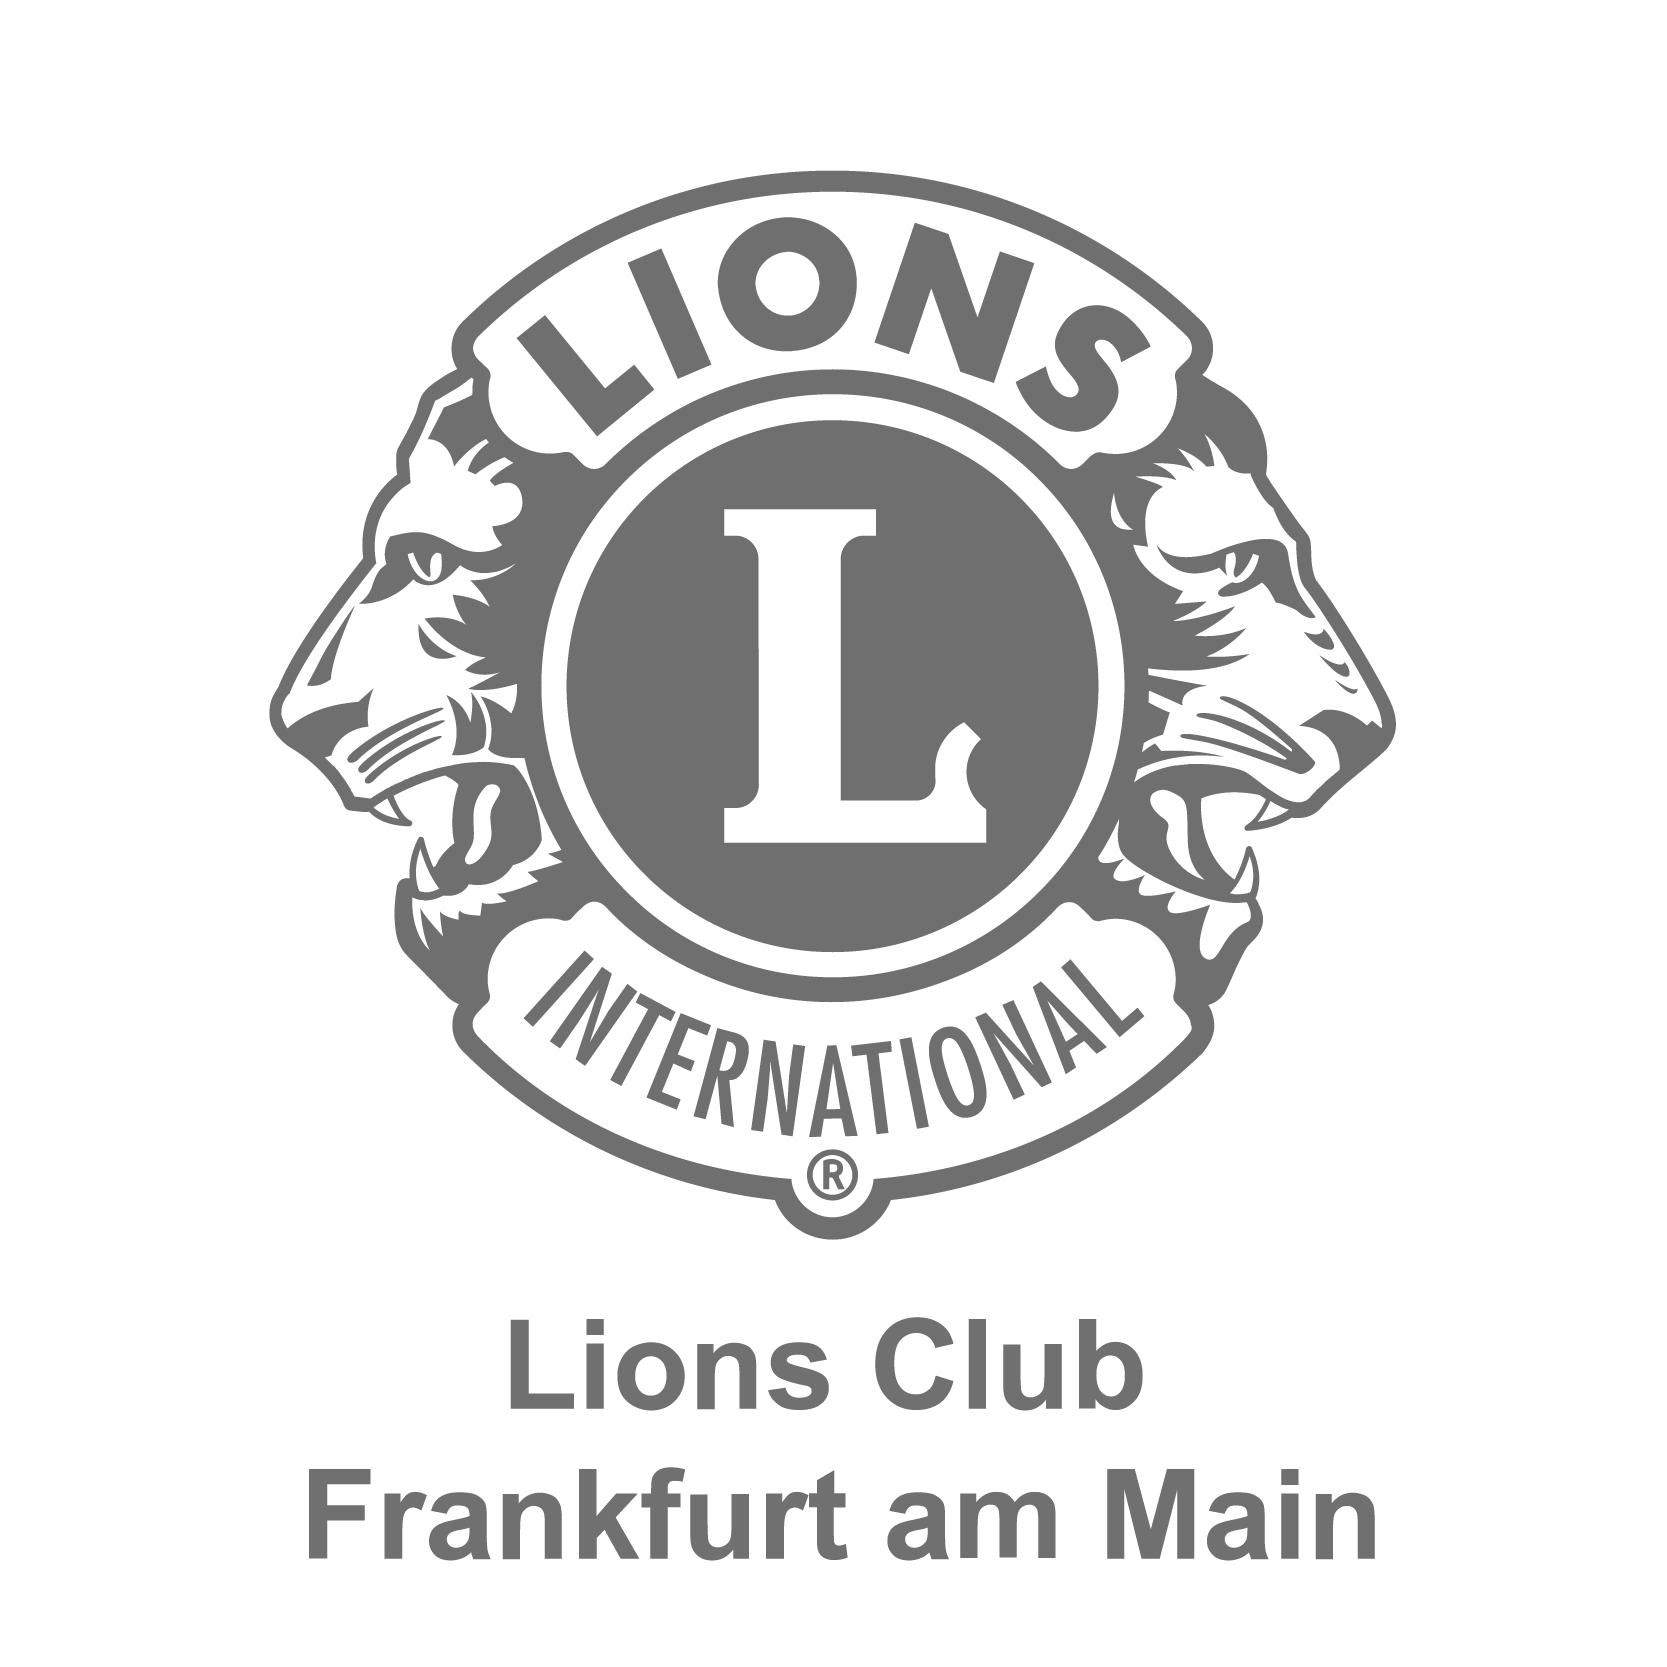 Lions Club - Frankfurt am Main